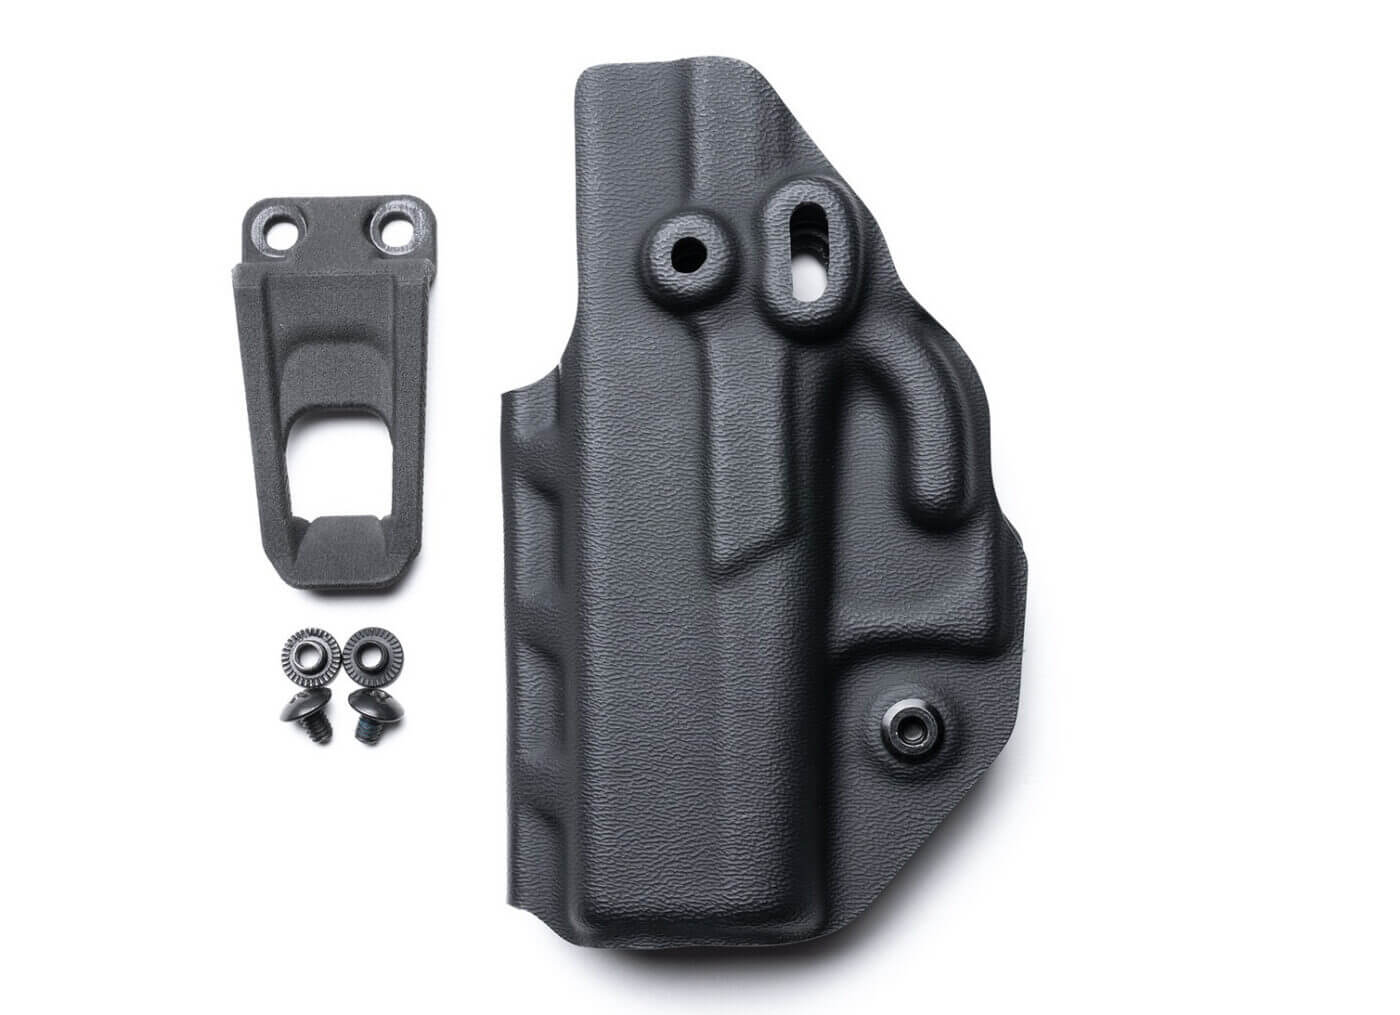 IWB rig for a Springfield Hellcat OSP fitted with a red dot sight